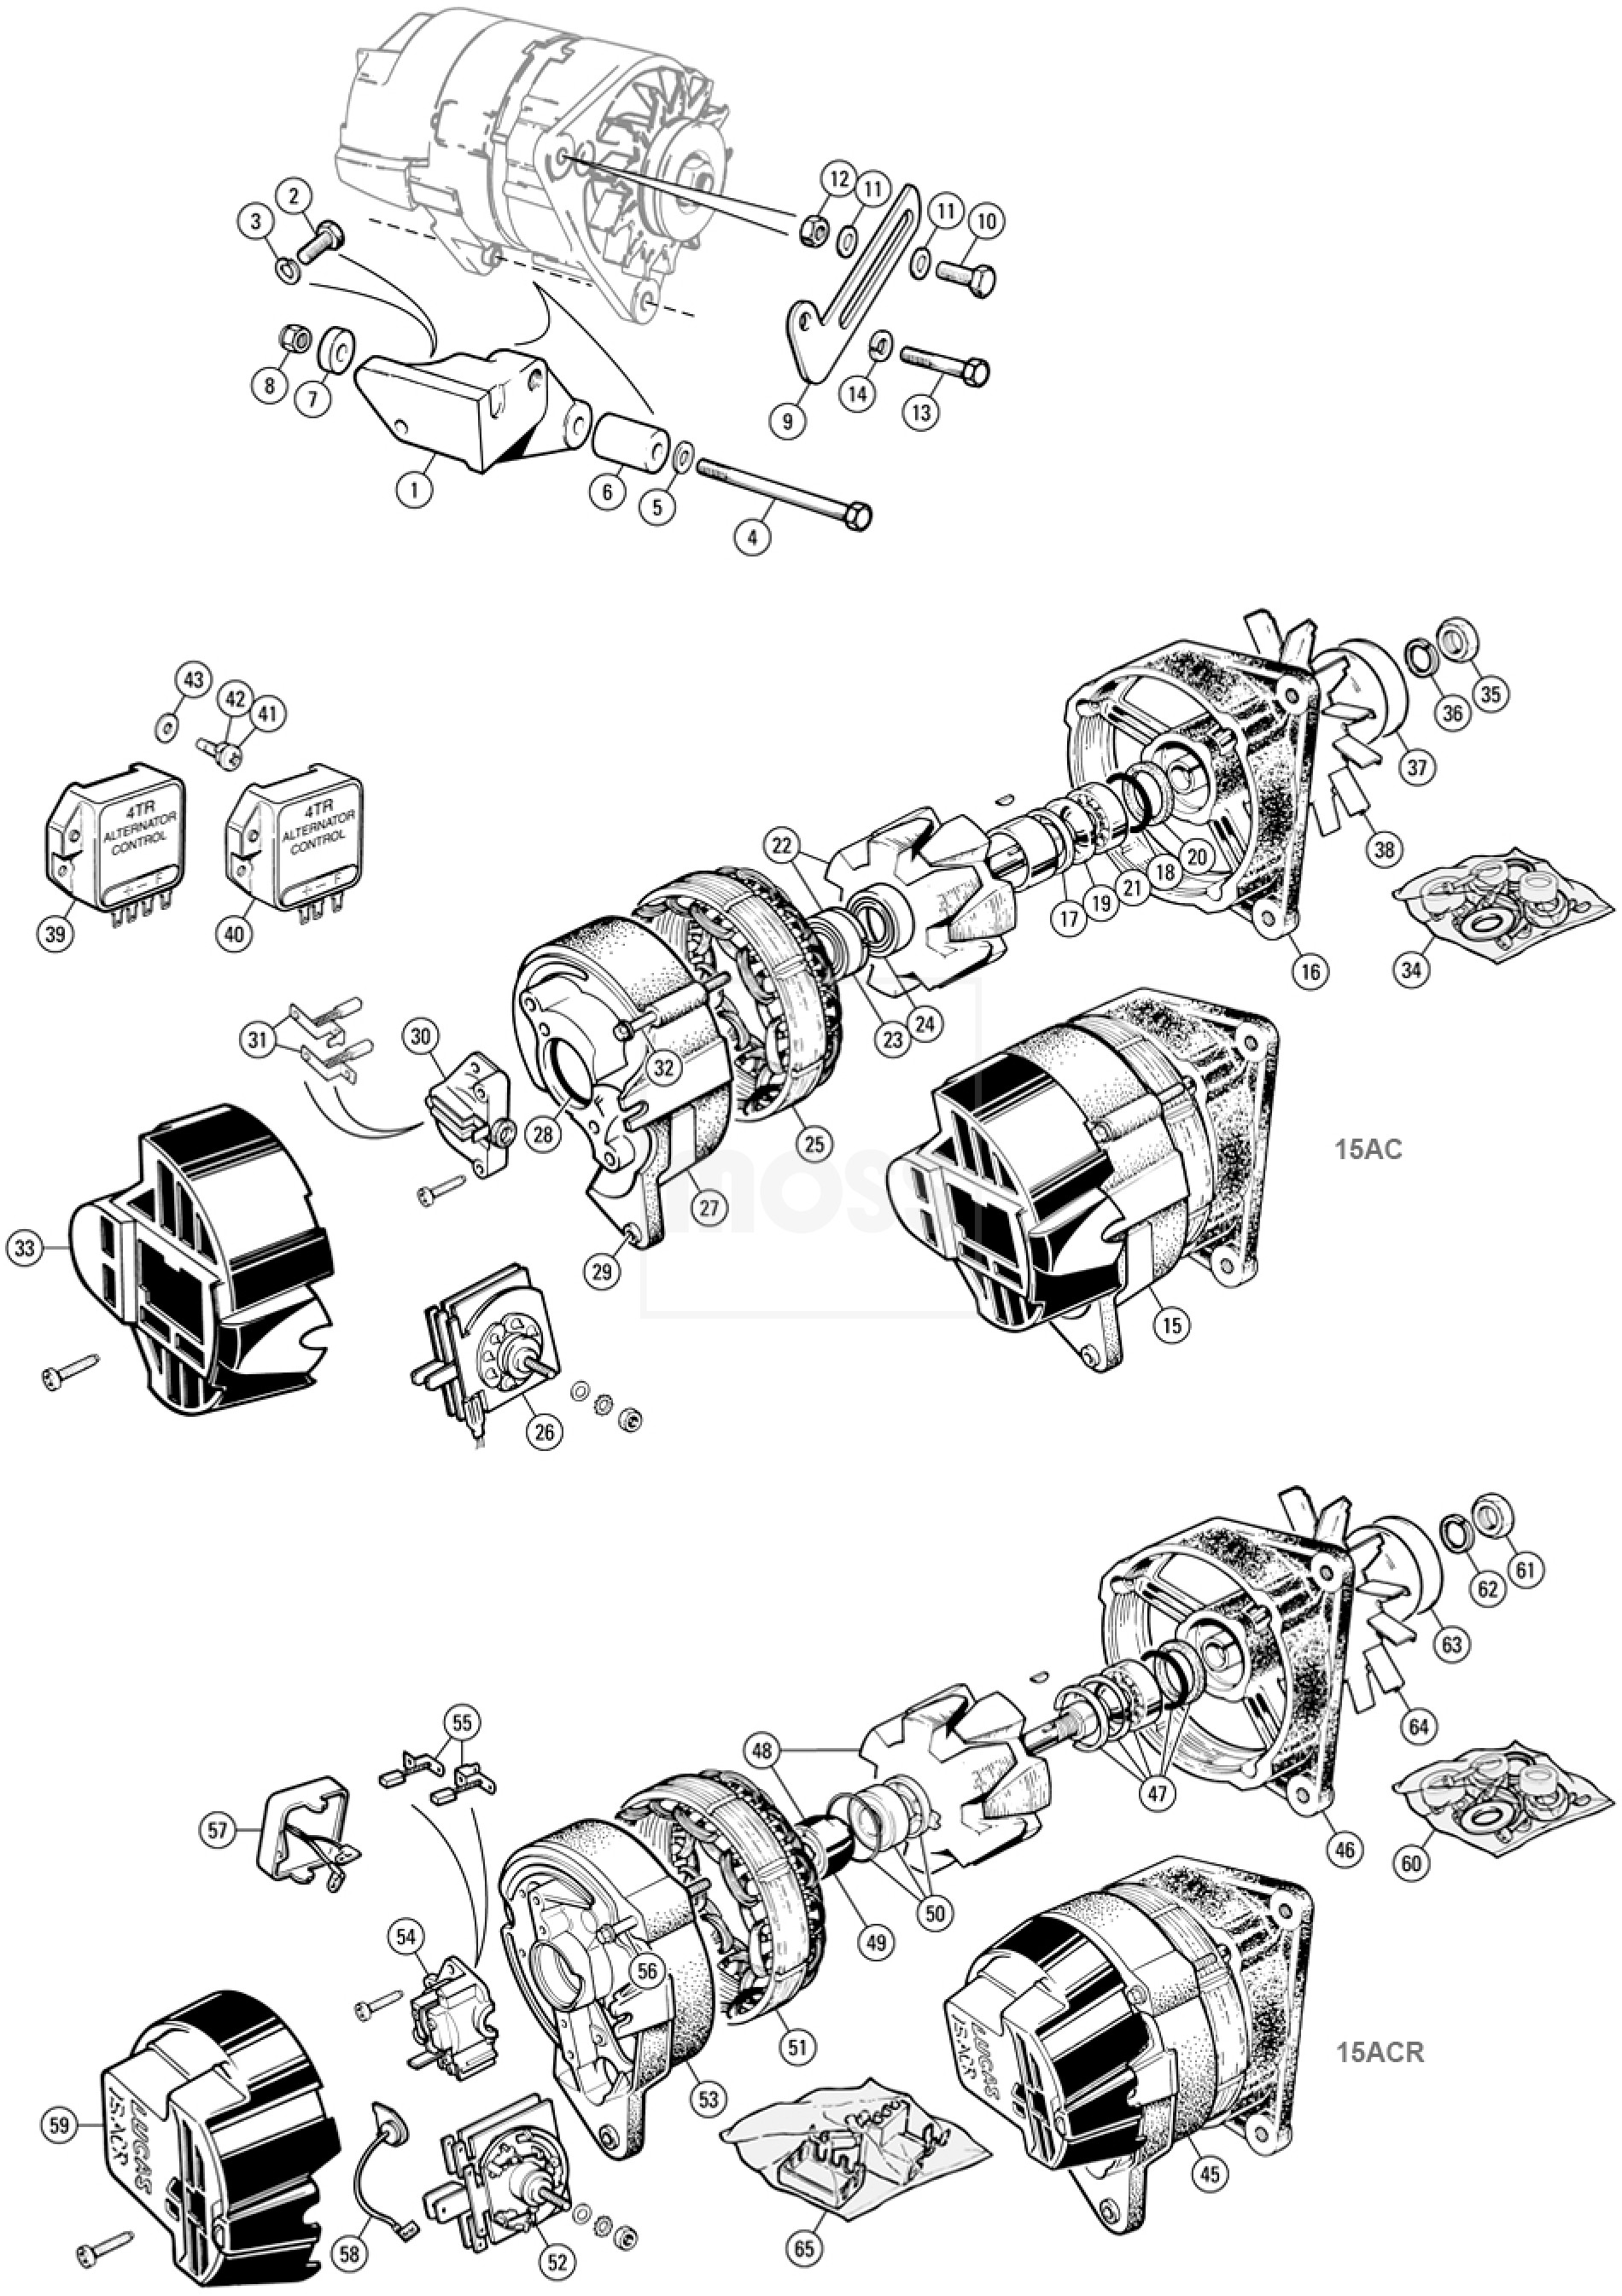 Lucas 15ac Alternator Wiring Diagram